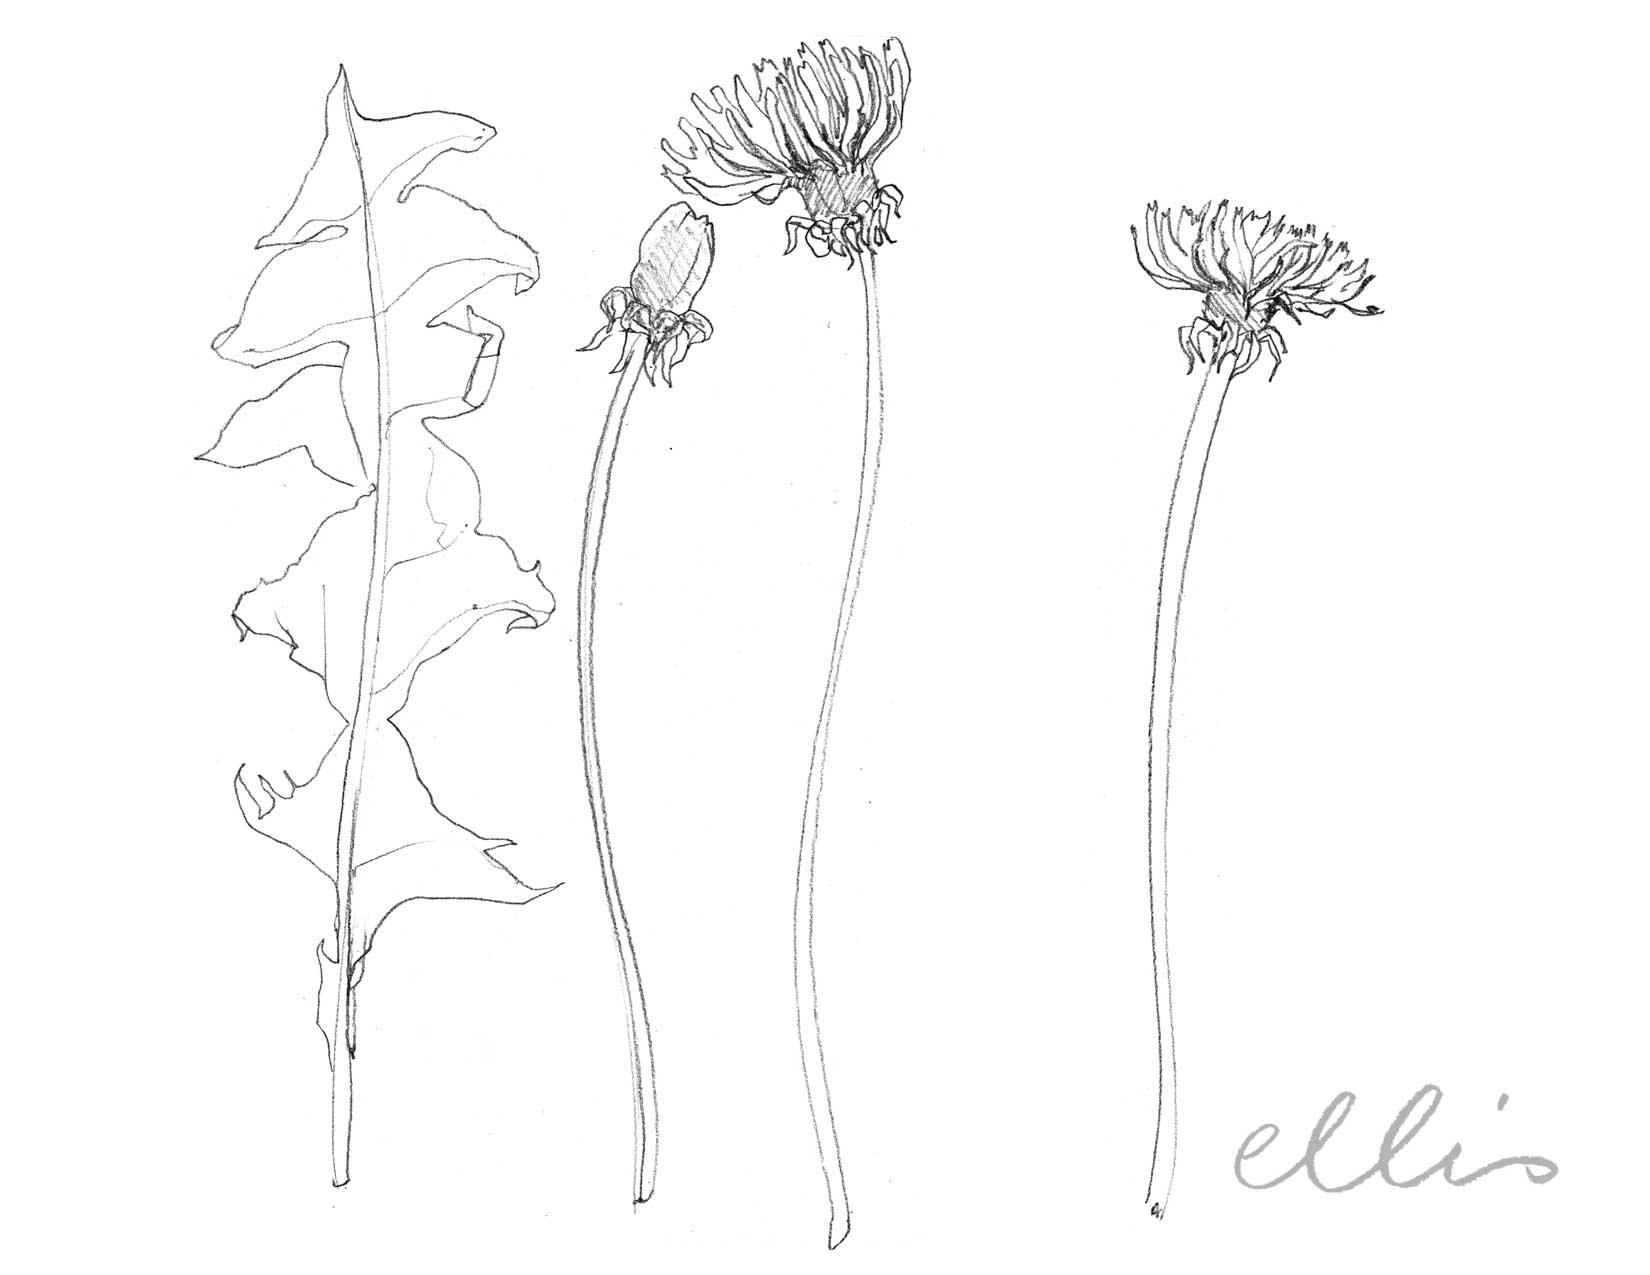 Erin Ellis_100 days project botanical drawings_2013-95.jpg